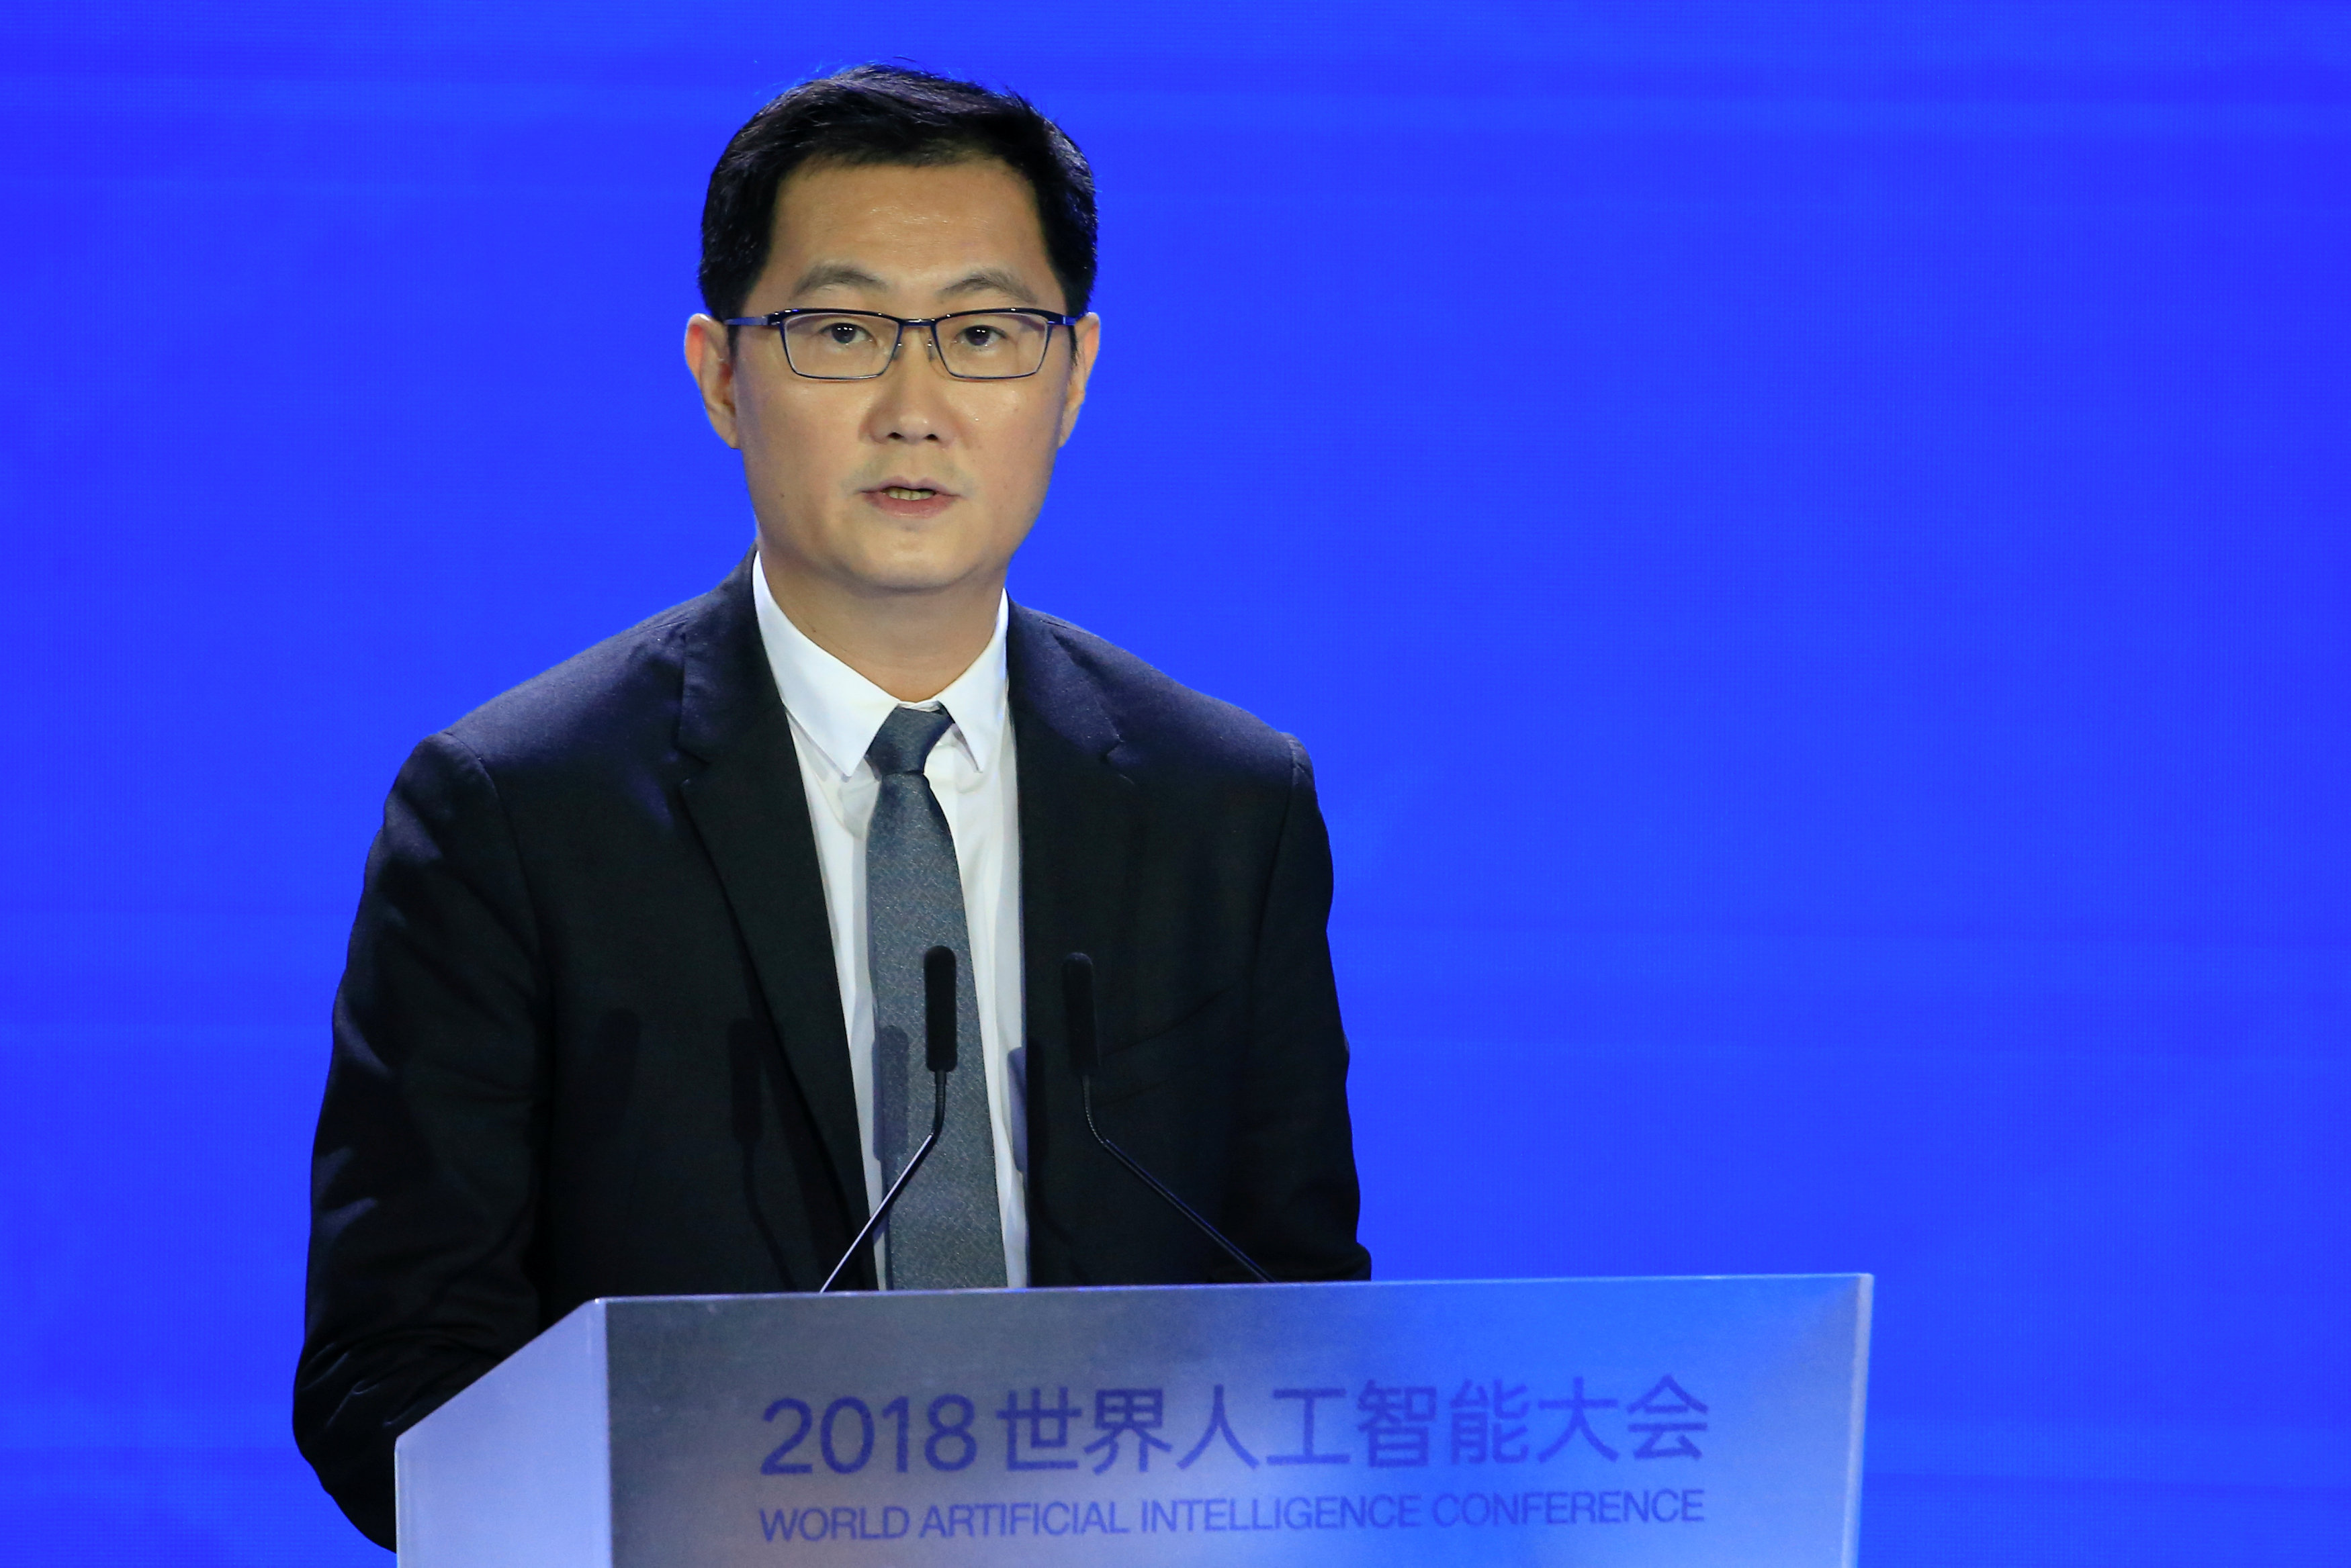 forbes china unveils list of 300 top innovators - HD3500×2335